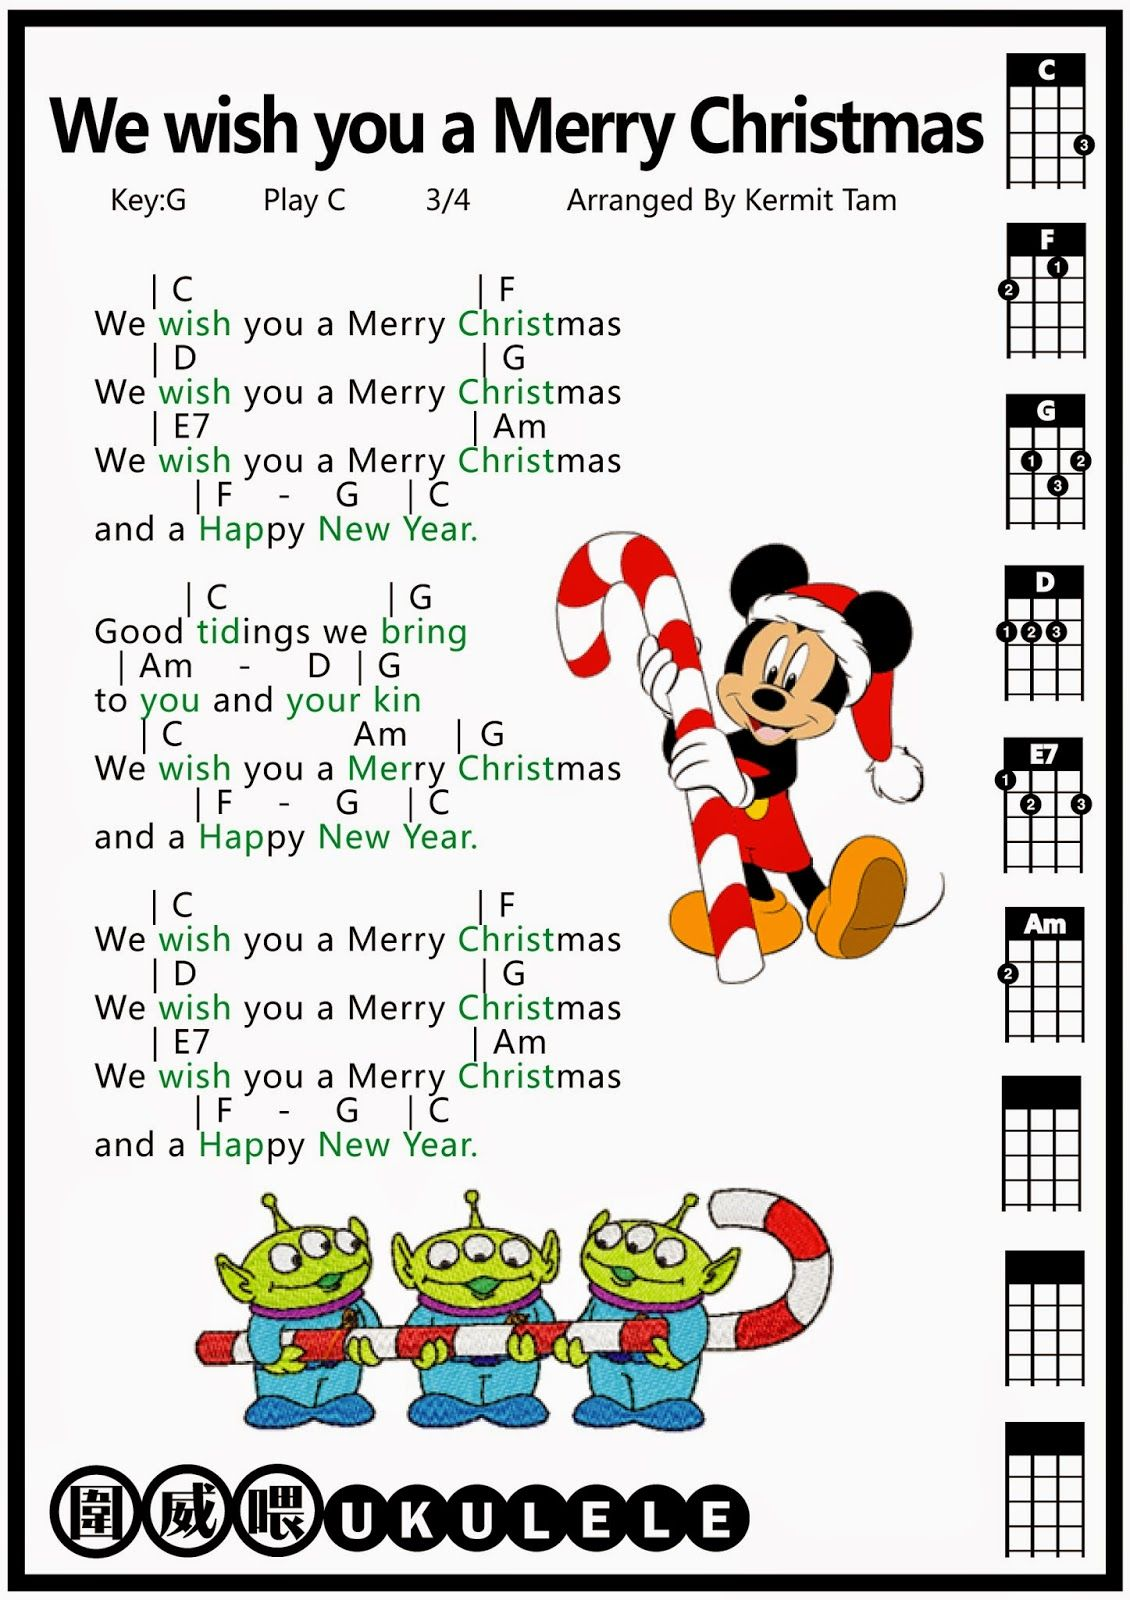 E5 9c 8d E5 A8 81 E5 96 82 Ukulele We Wish You A Merry Christmas Ukulele Tab